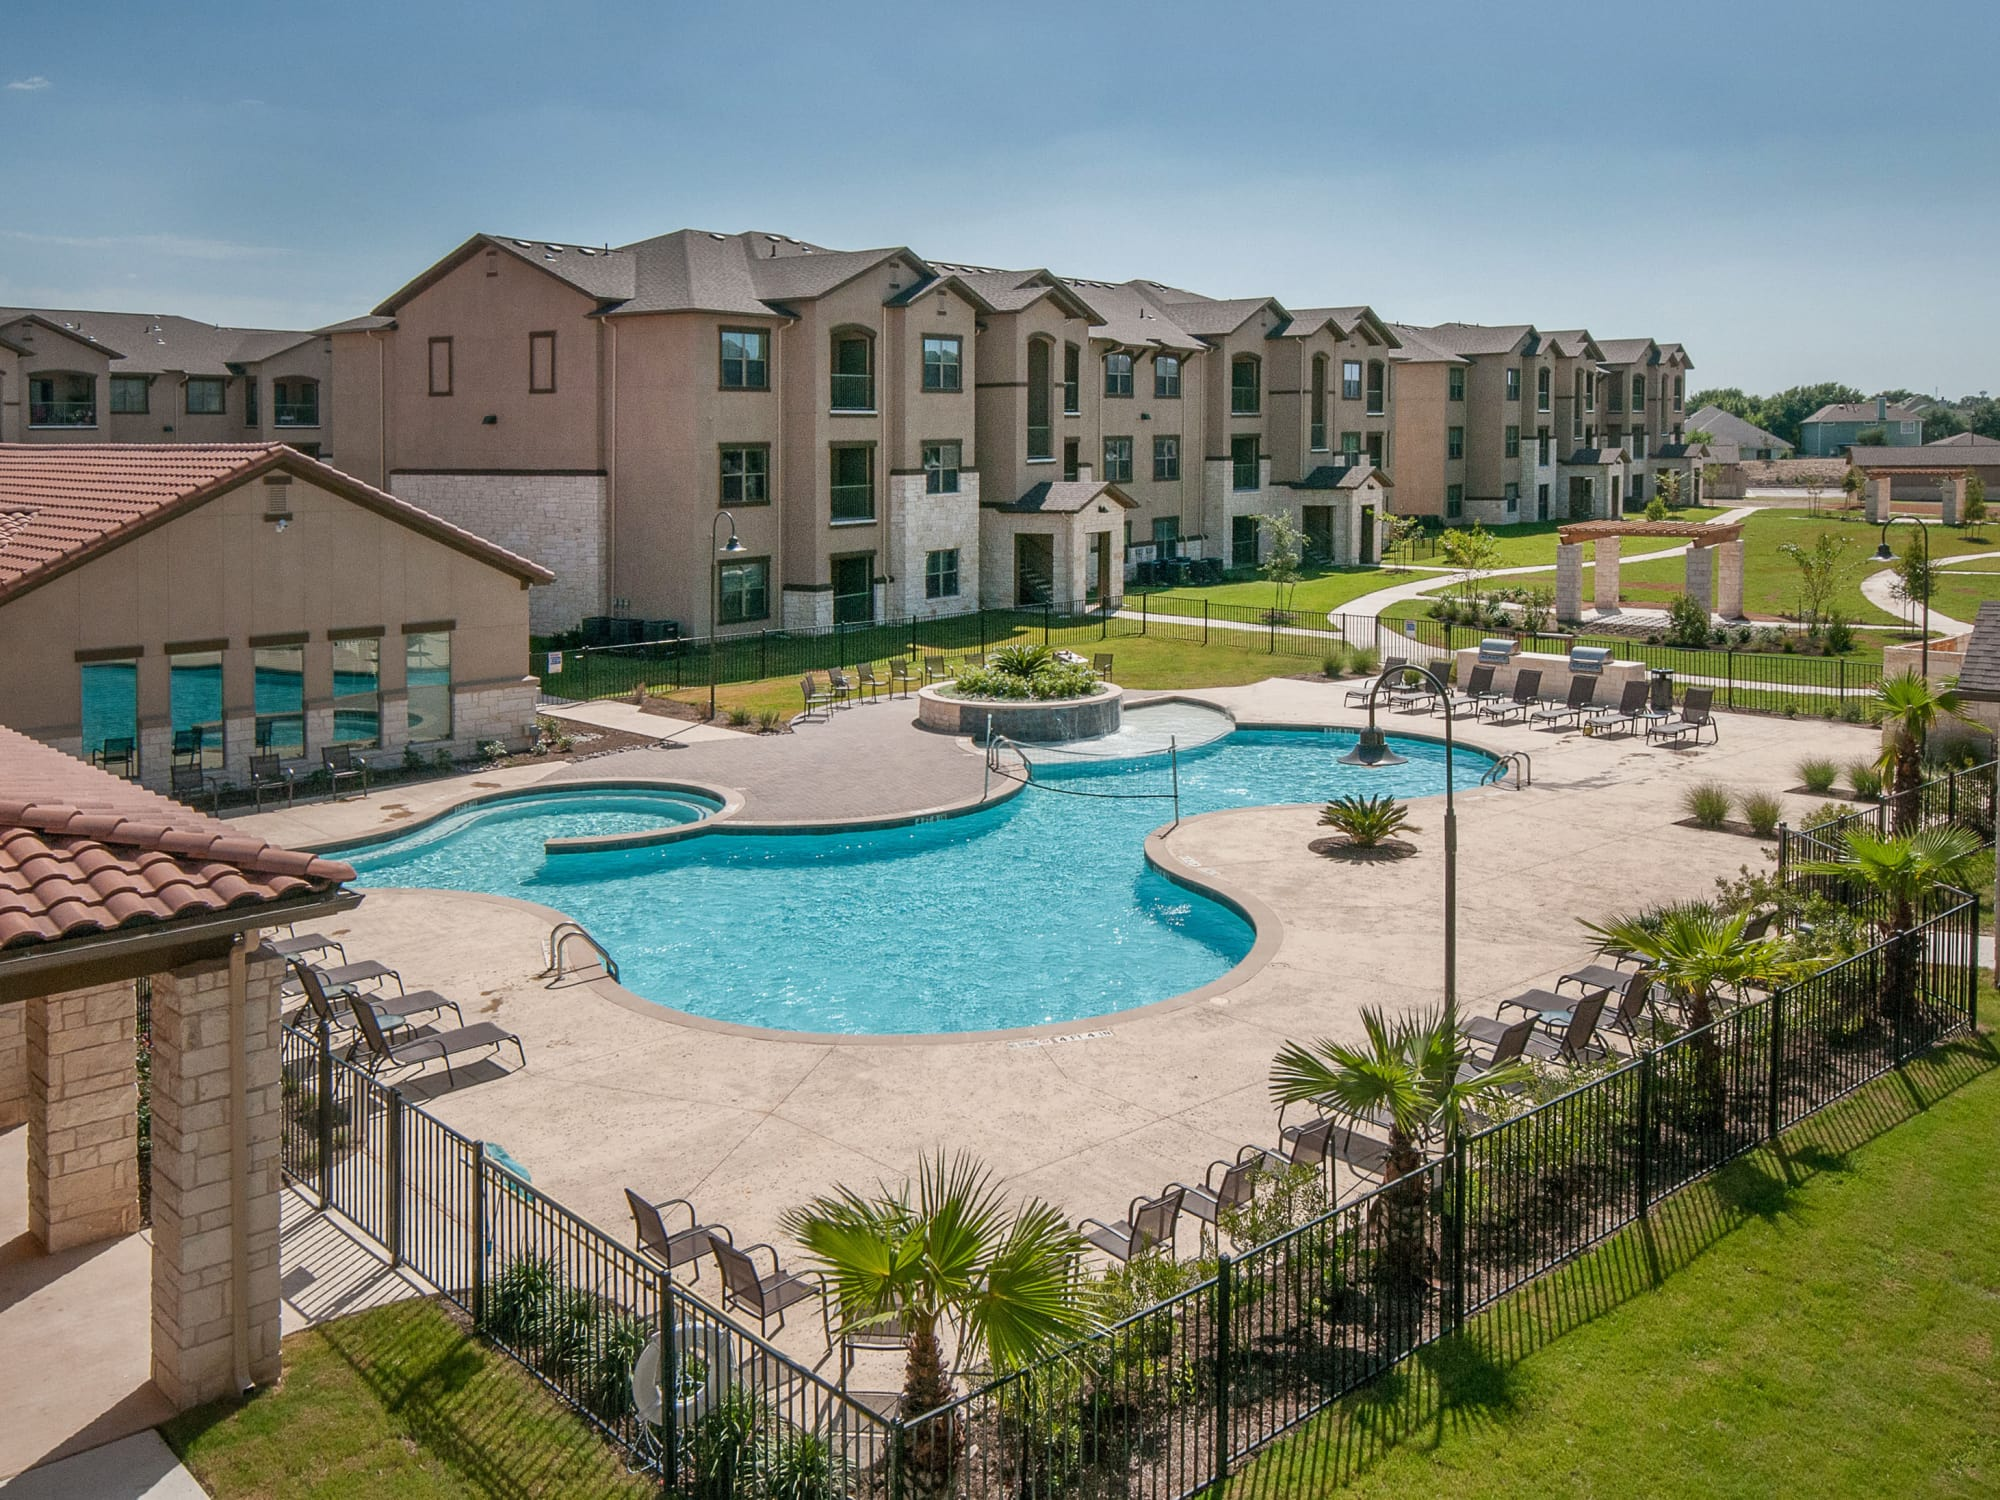 Apartments at Carrington Oaks in Buda, Texas